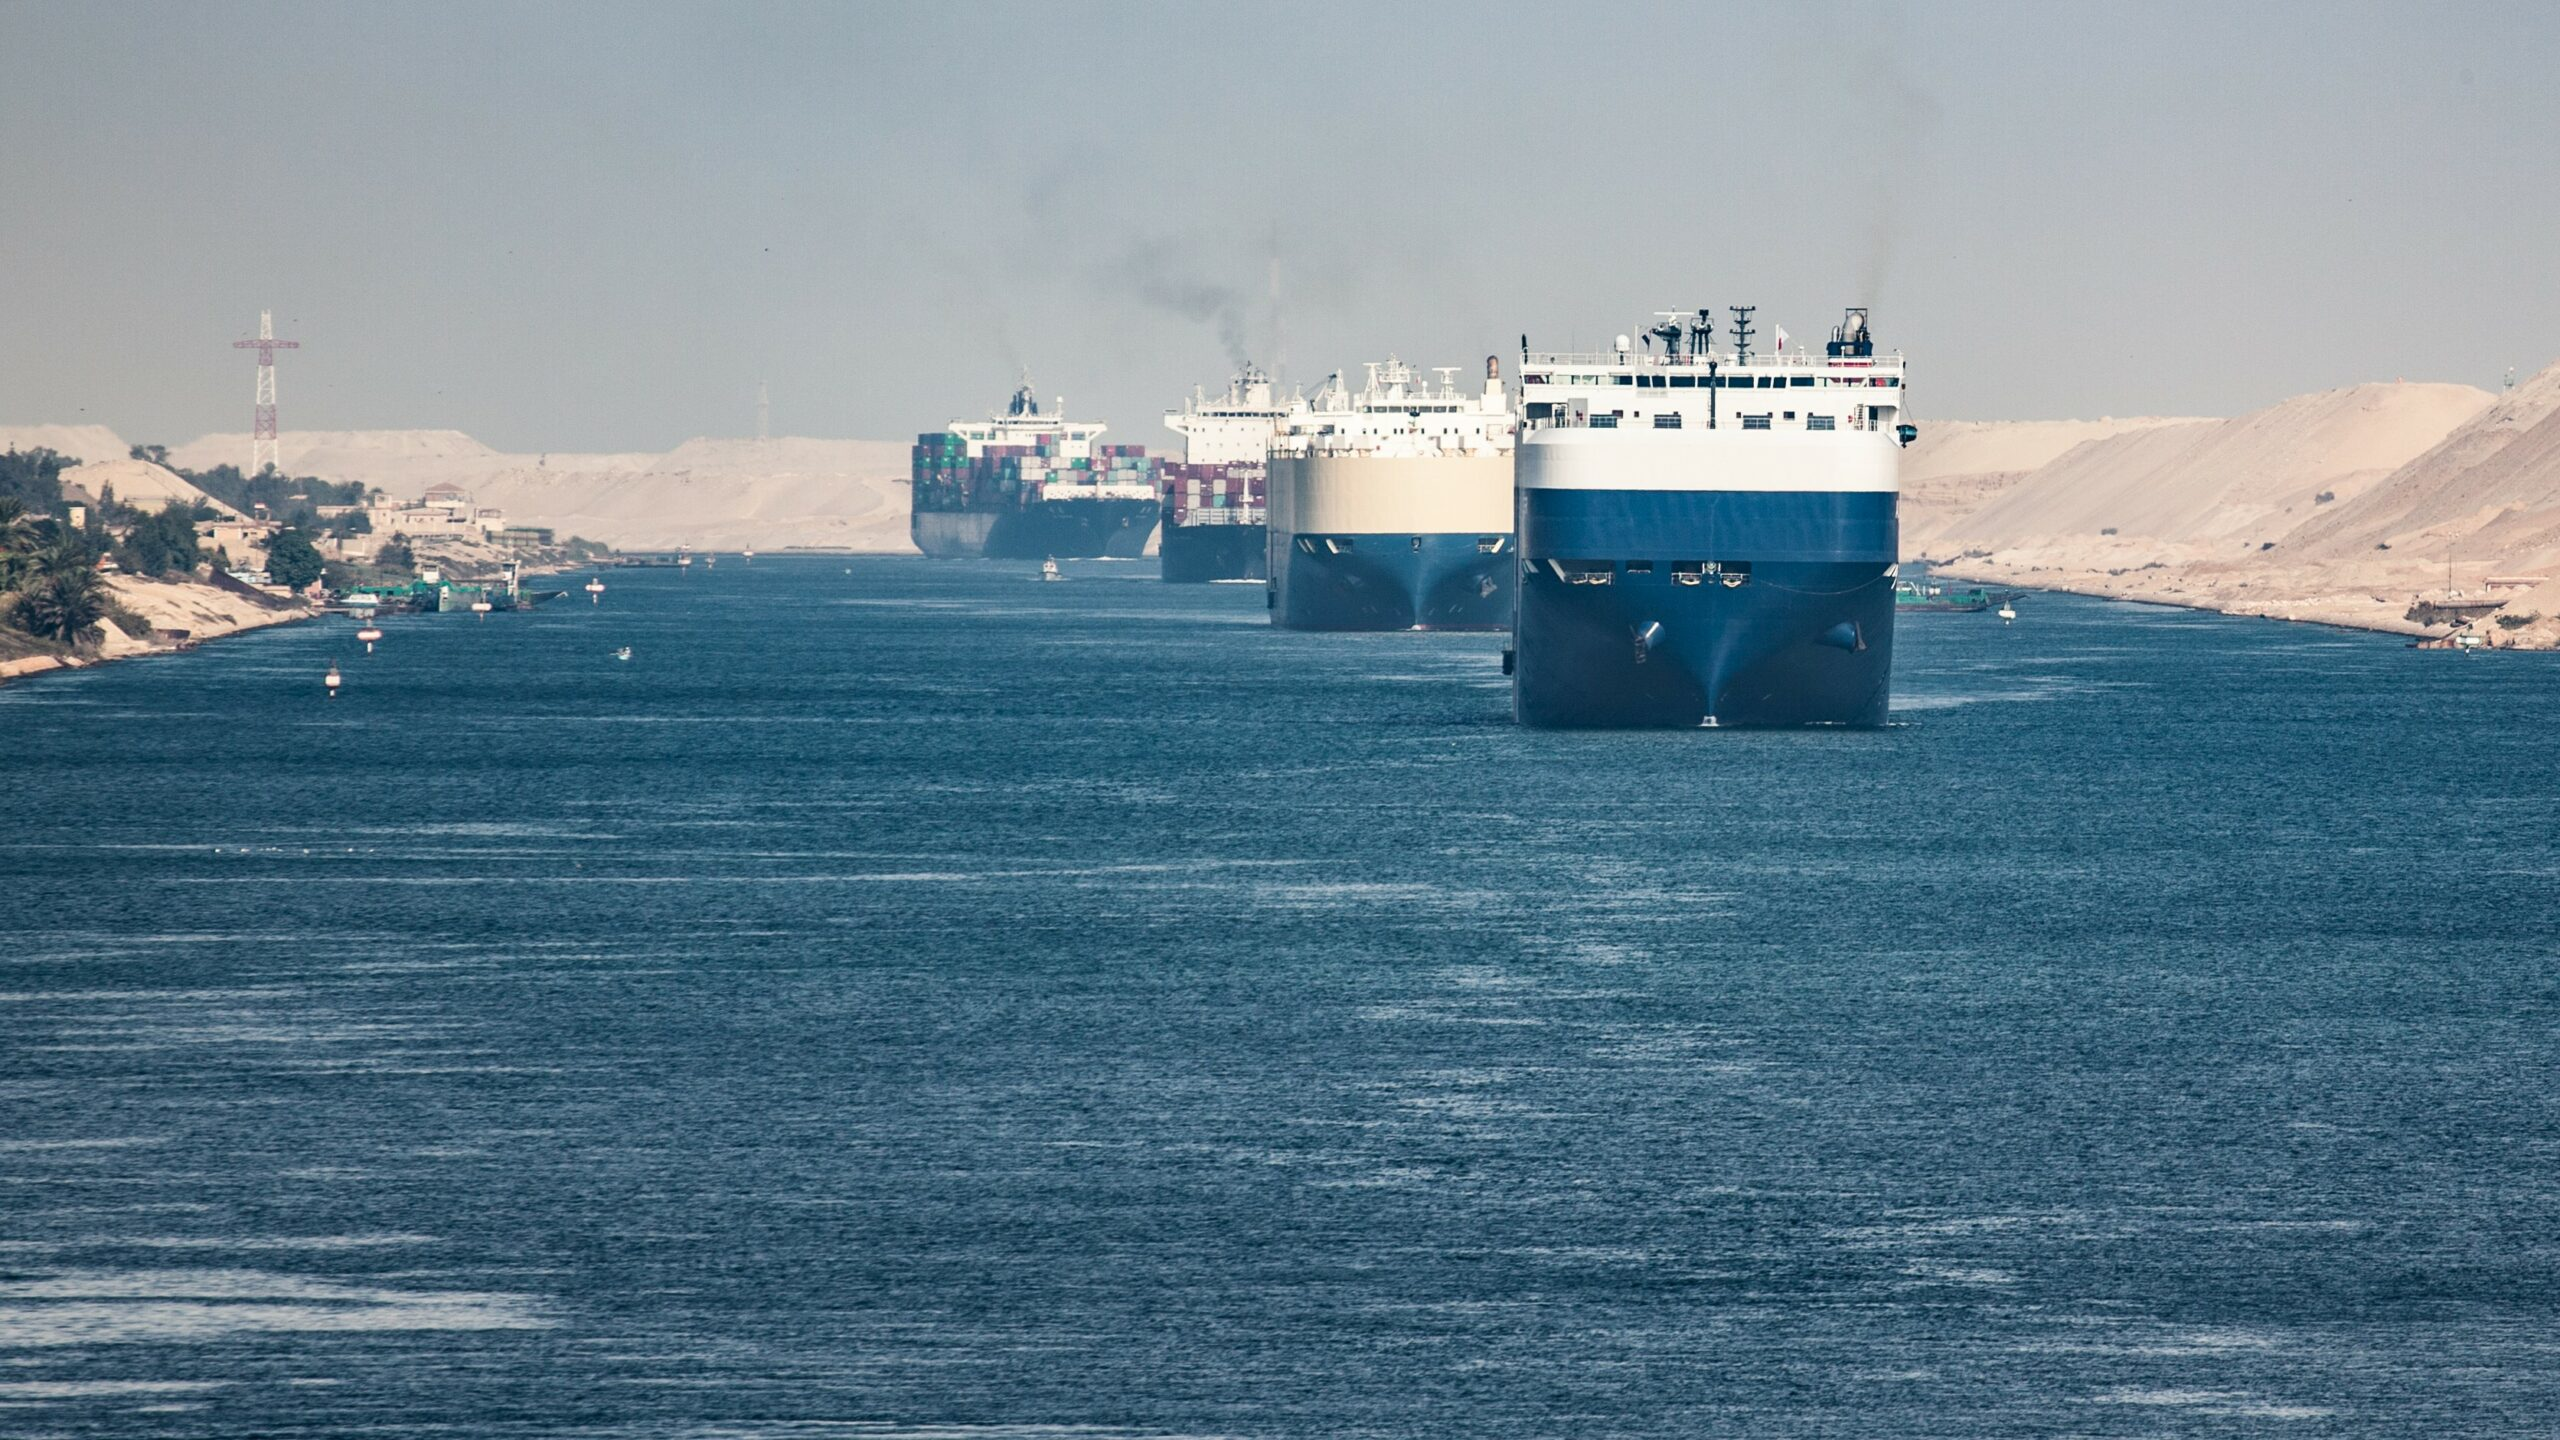 container ships on the suez canal in egypt